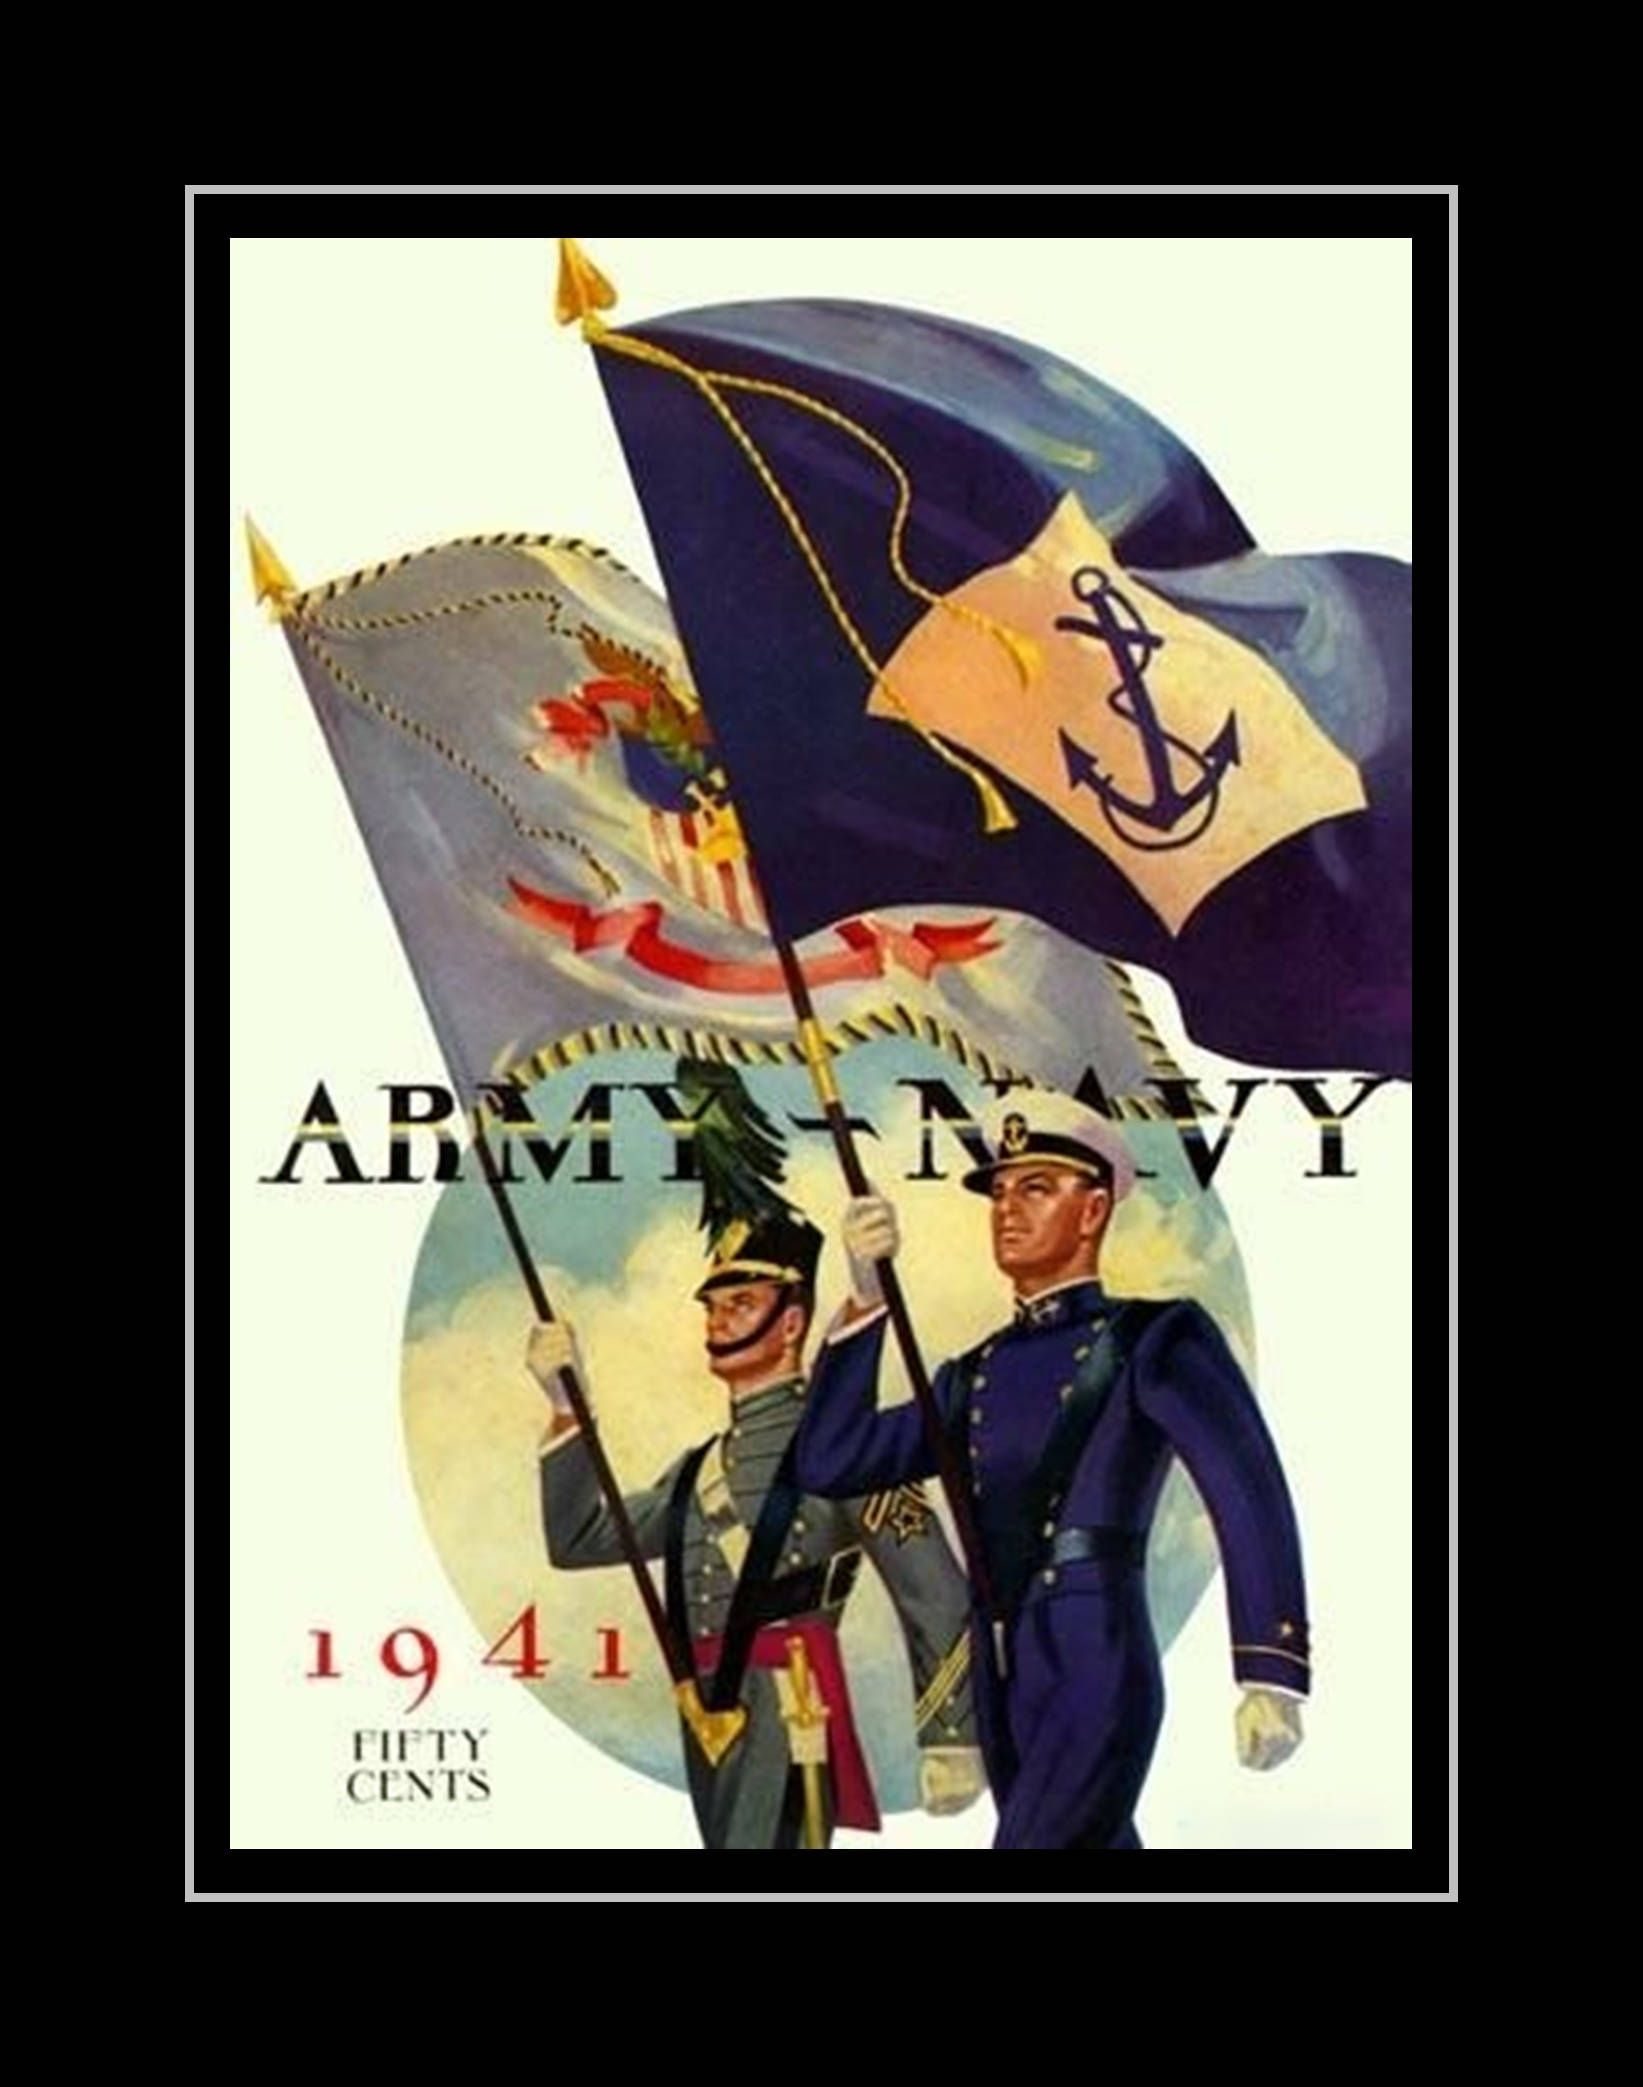 Vintage 1941 Army Navy Football Poster, Gift for Men